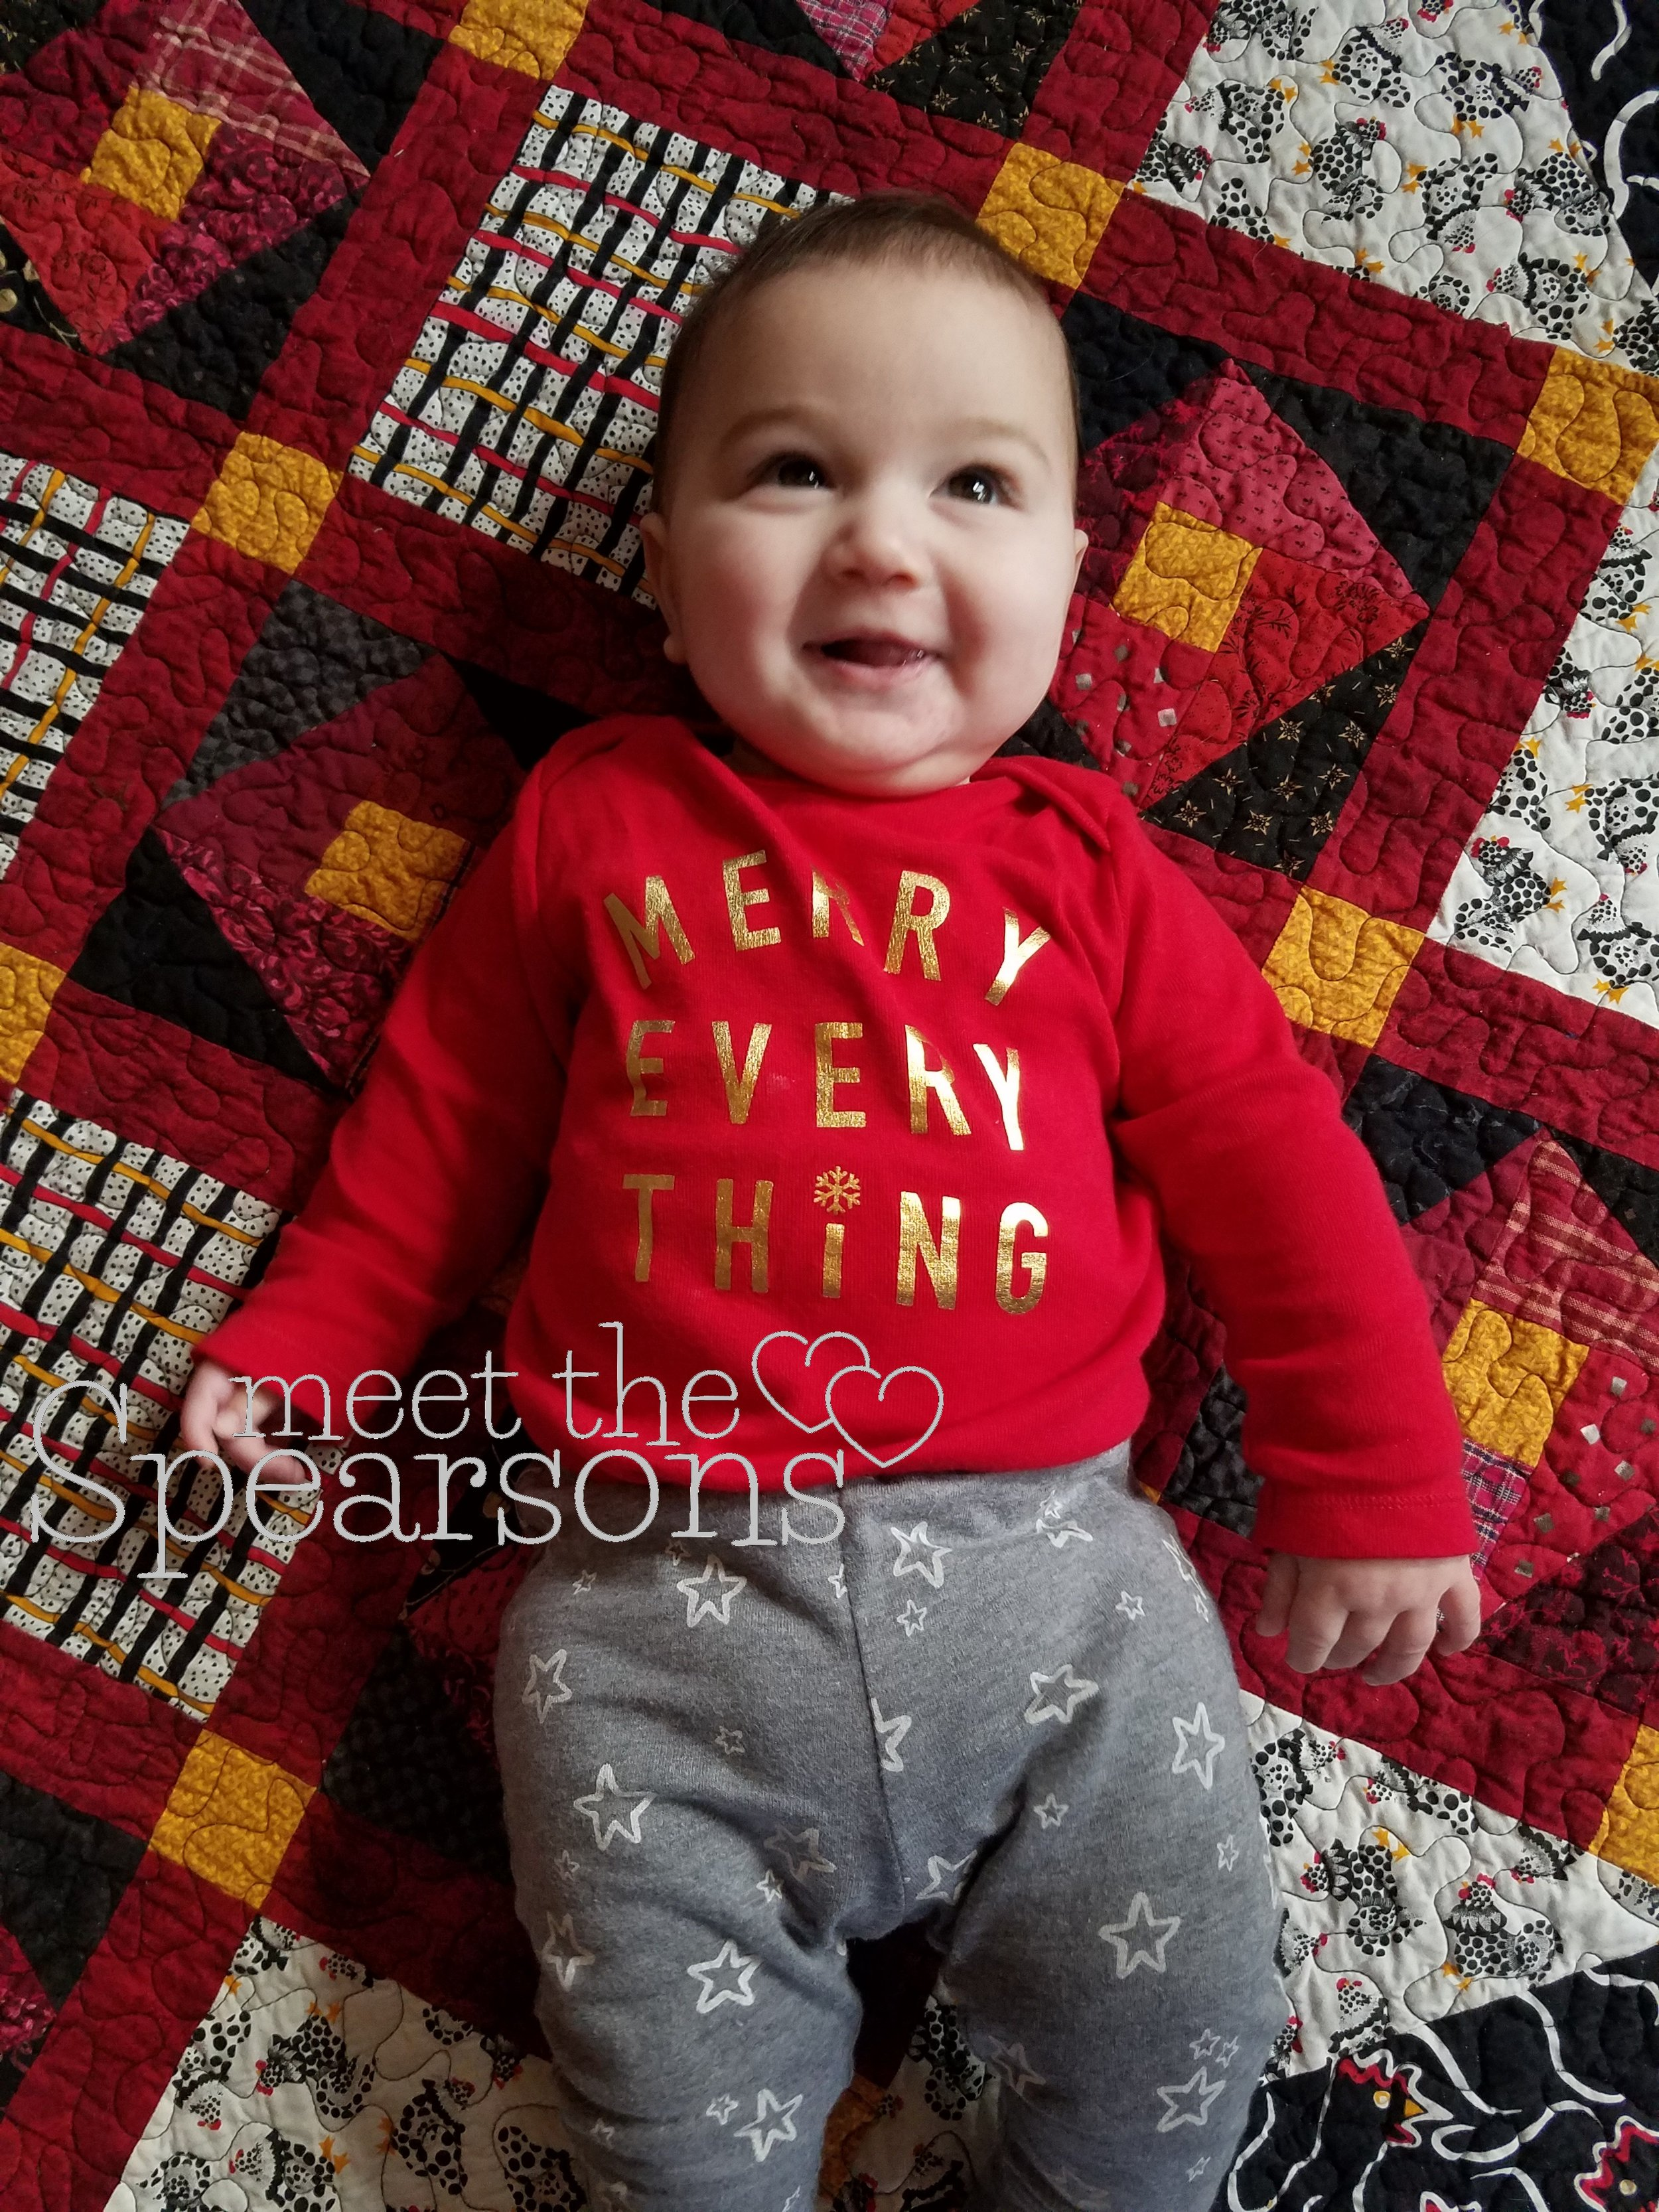 Merry Everything baby first christmas